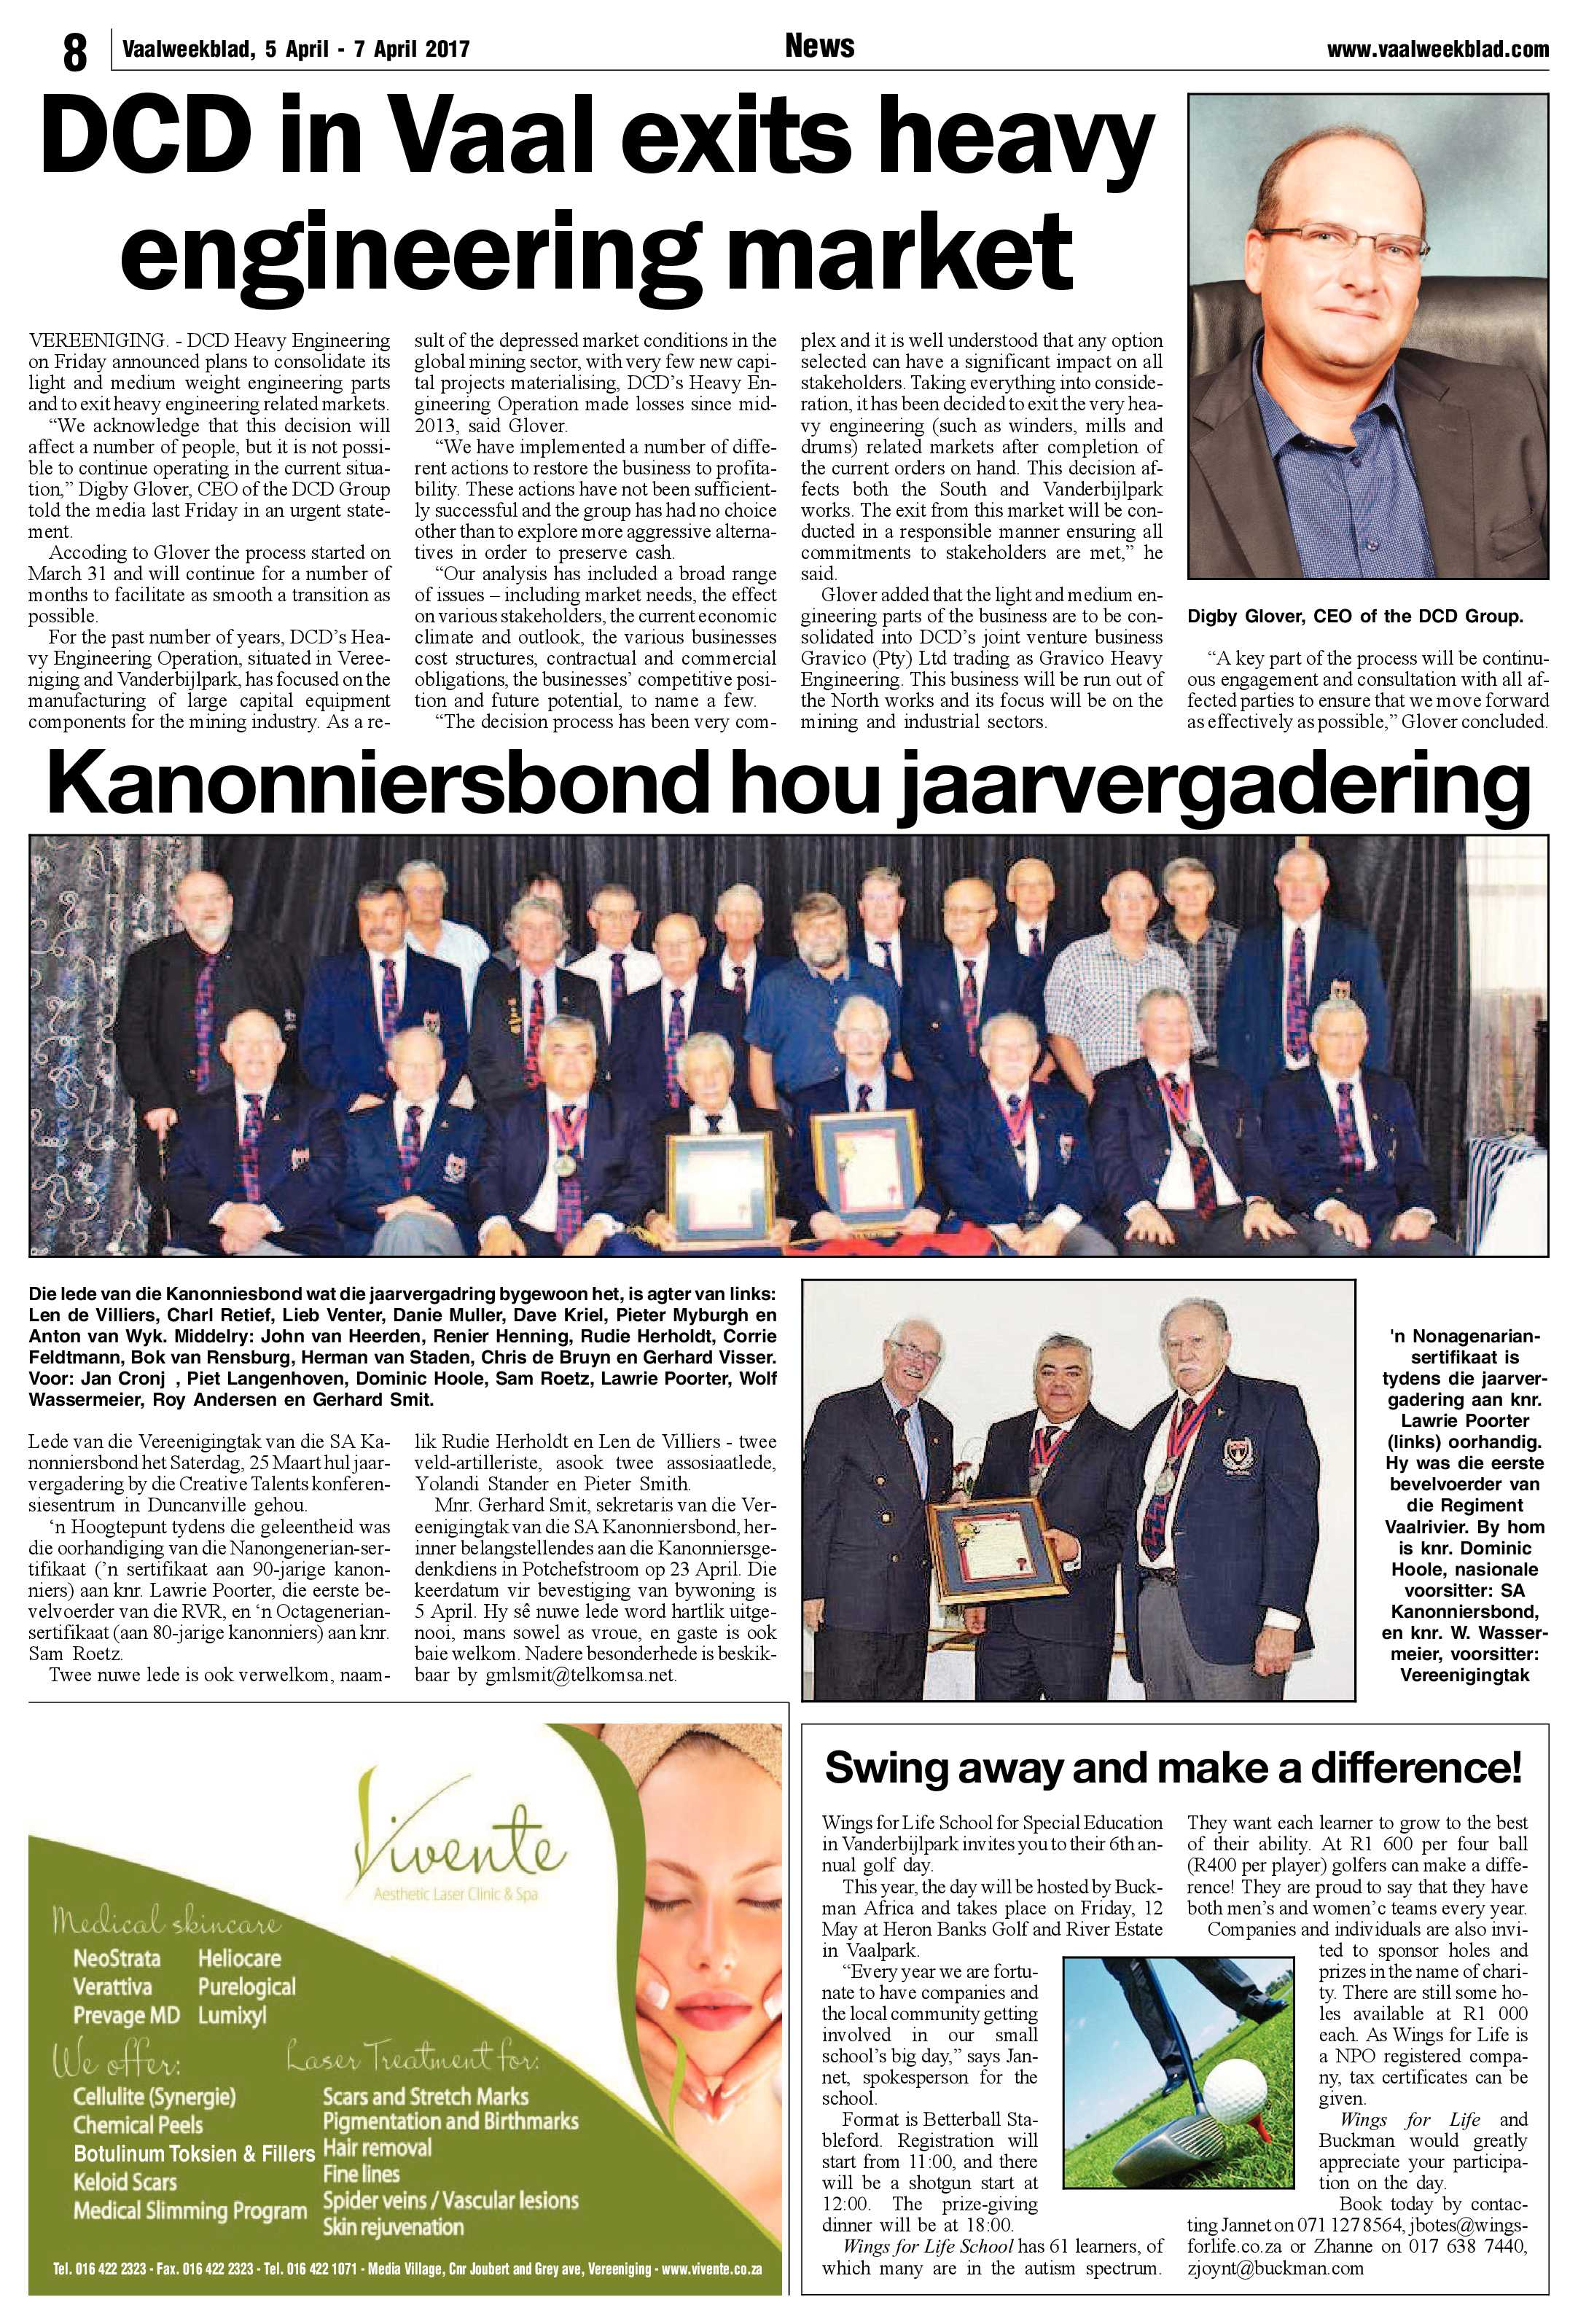 vaalweekblad-5-7-april-2017-2-epapers-page-8